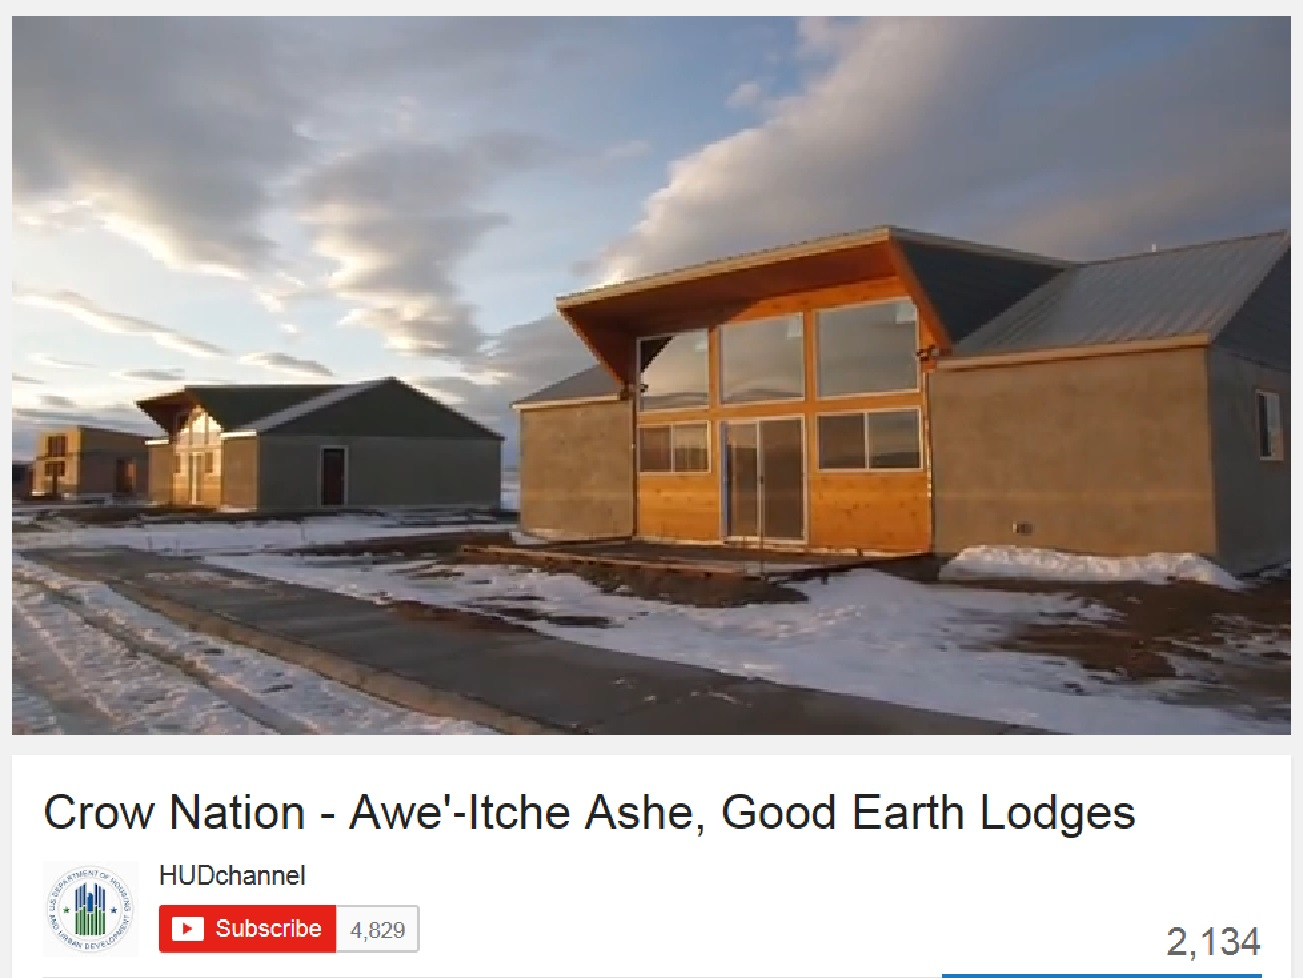 Awe  Itche Ashe, Good Earth Lodges